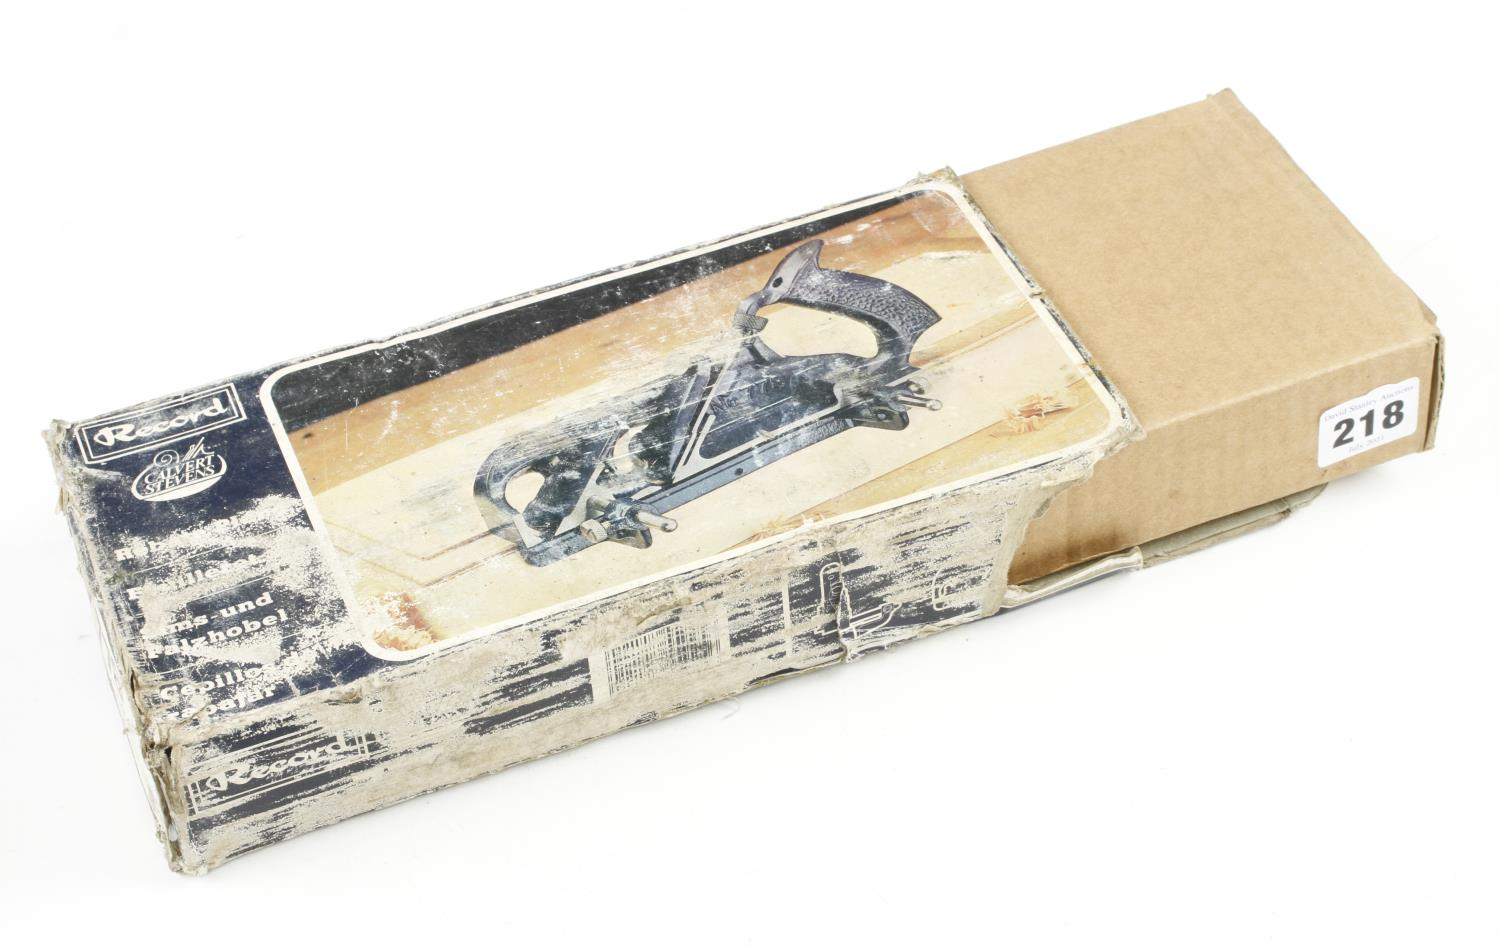 A RECORD No 778 double arm rebate plane with orig wrapping and instructions in orig tatty box F - Image 2 of 2